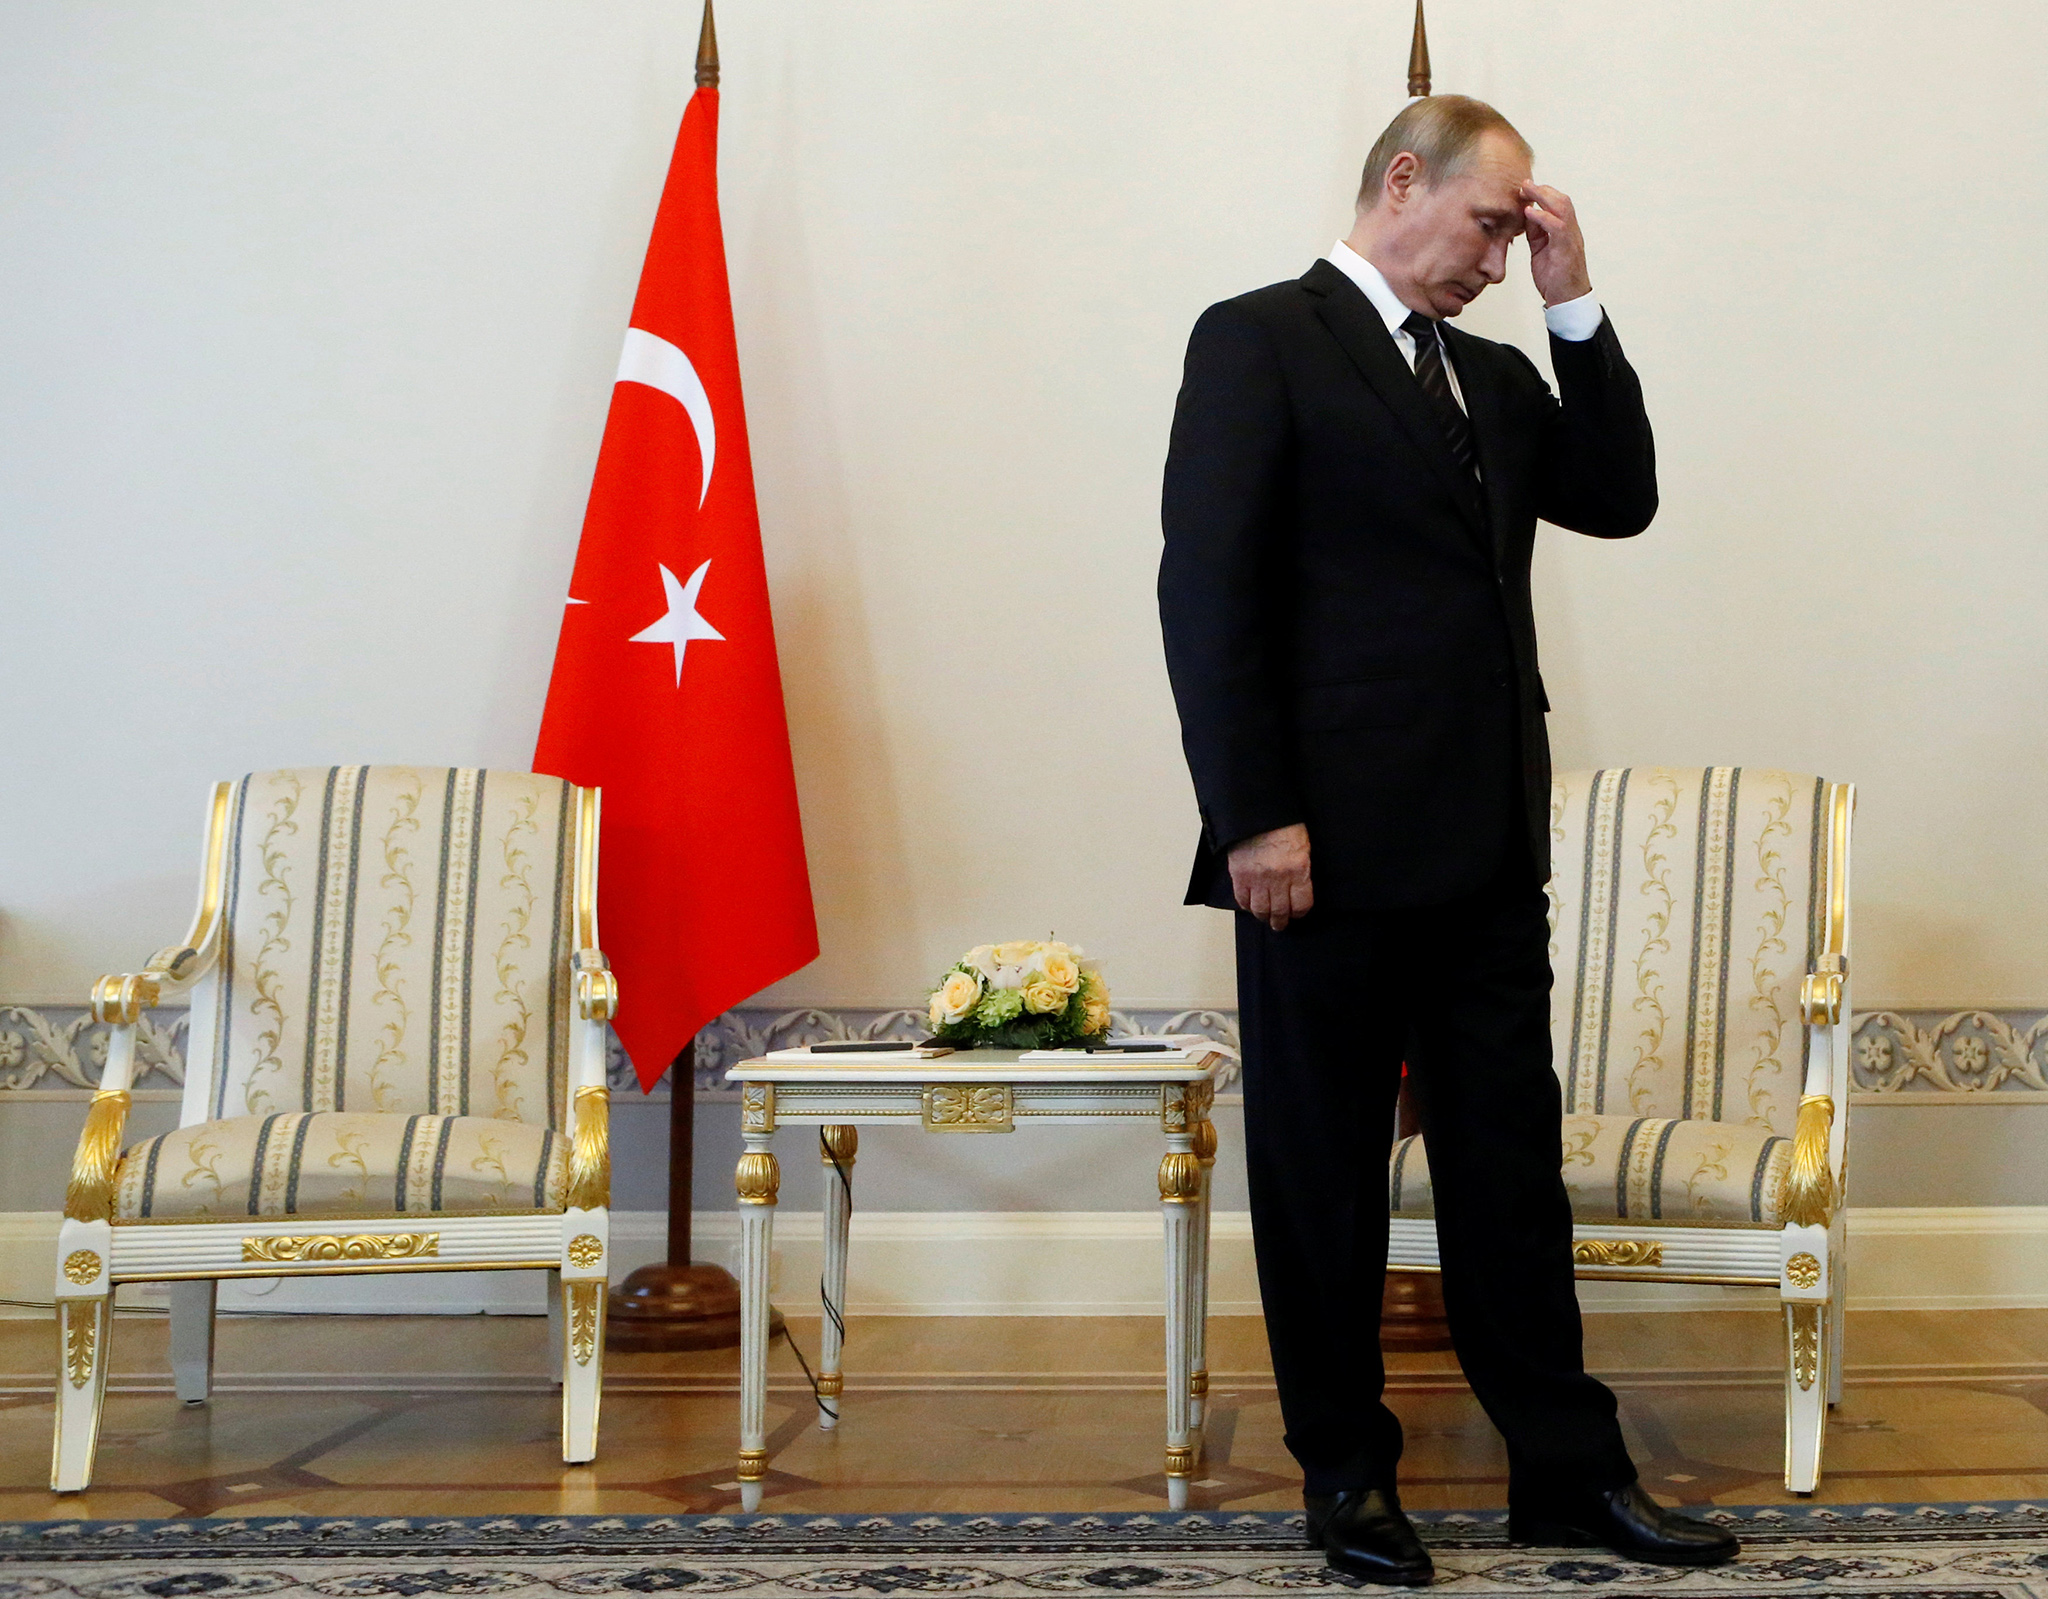 Putin attends a meeting with Turkish President Tayyip Erdogan in St. Petersburg, Russia, August 9, 2016.  REUTERS/Sergei Karpukhin